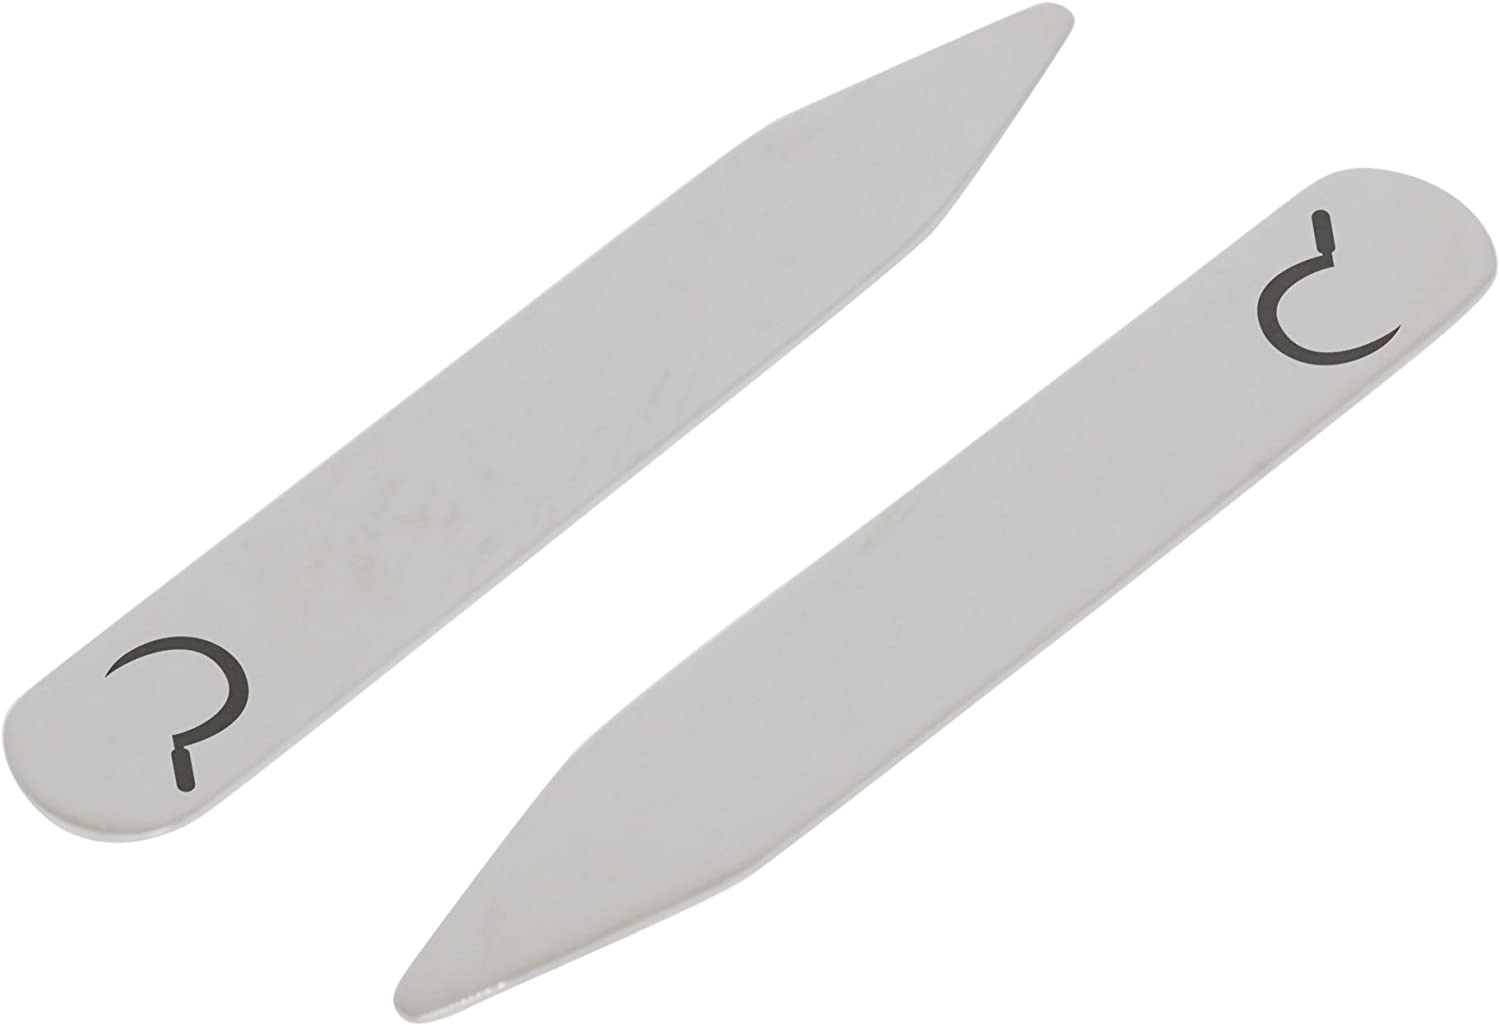 MODERN GOODS SHOP Stainless Steel Collar Stays With Laser Engraved Scythe Design 2.5 Inch Metal Collar Stiffeners Made In USA